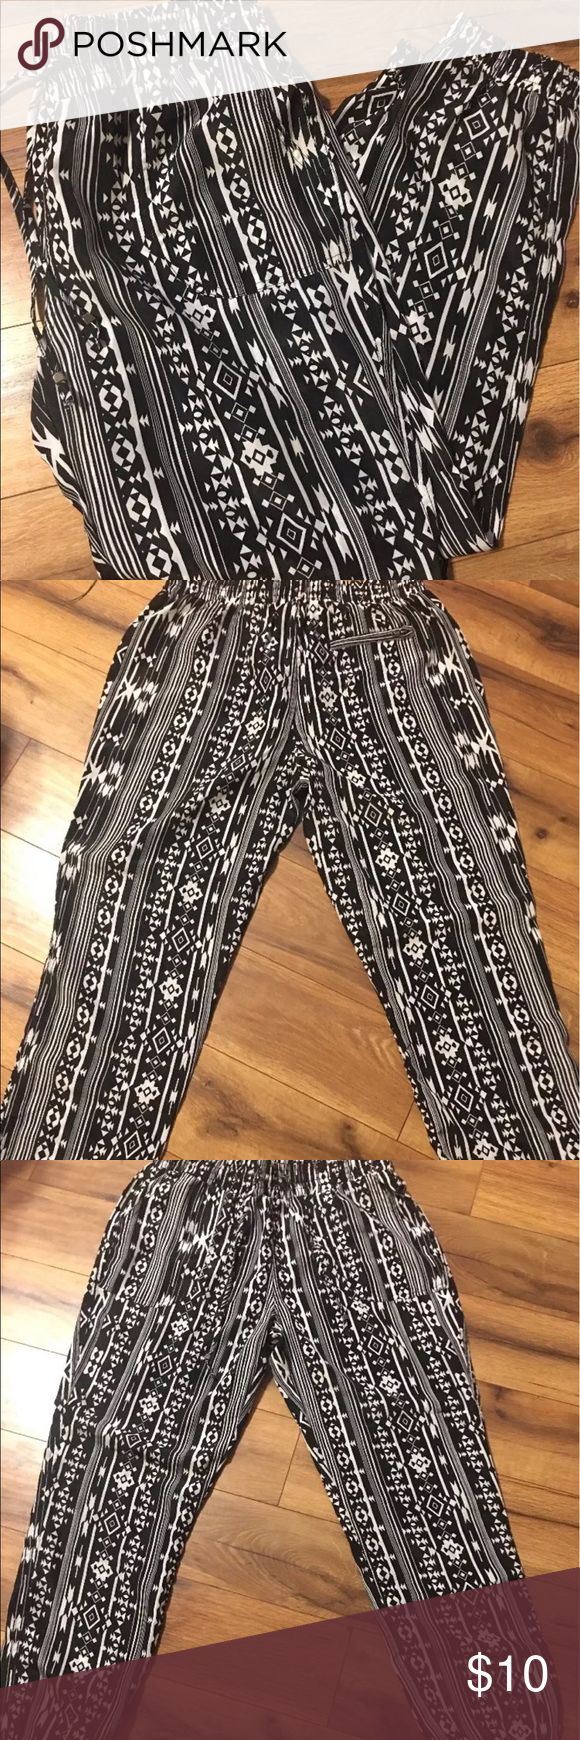 Kiss & Cry Medium Polyester Aztec Print Pants NWOT Never worn, pockets on the front, one pocket on back right, cuffs at the bottom. Kiss & Cry Pants Track Pants & Joggers